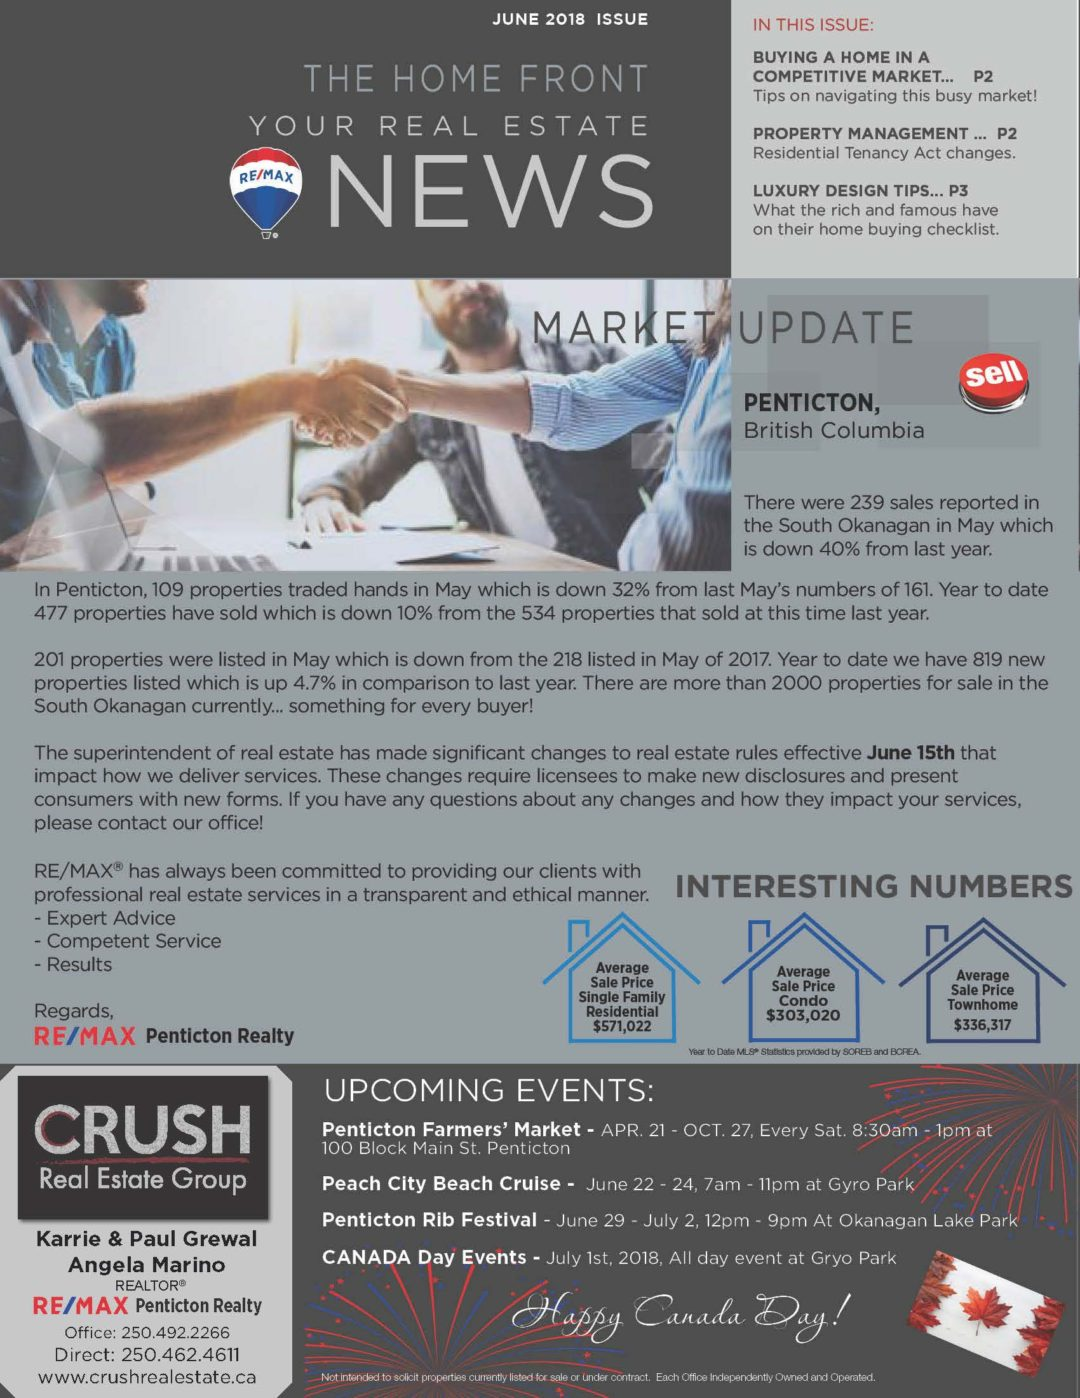 South Okanagan Real Estate News – June 2018